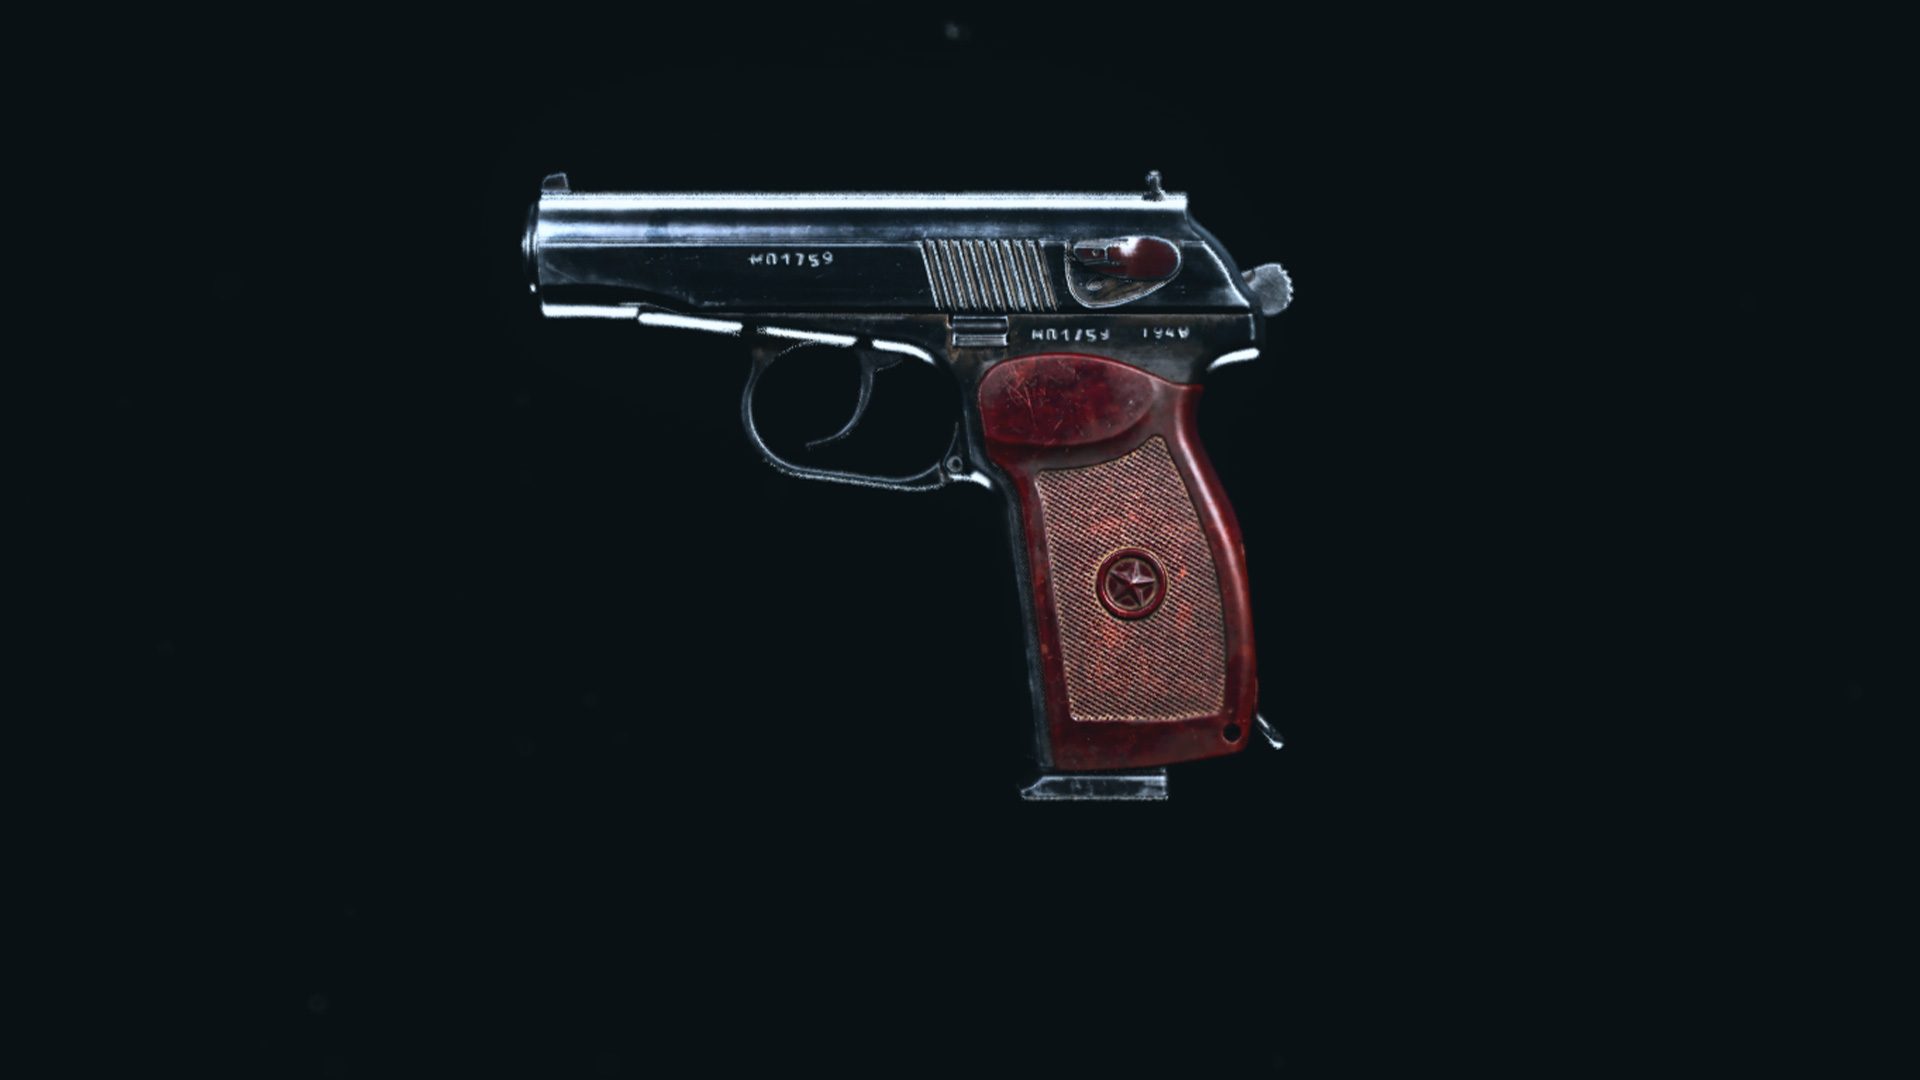 Call of Duty: Warzone's new Sykov pistol has gotten a predictable nerf